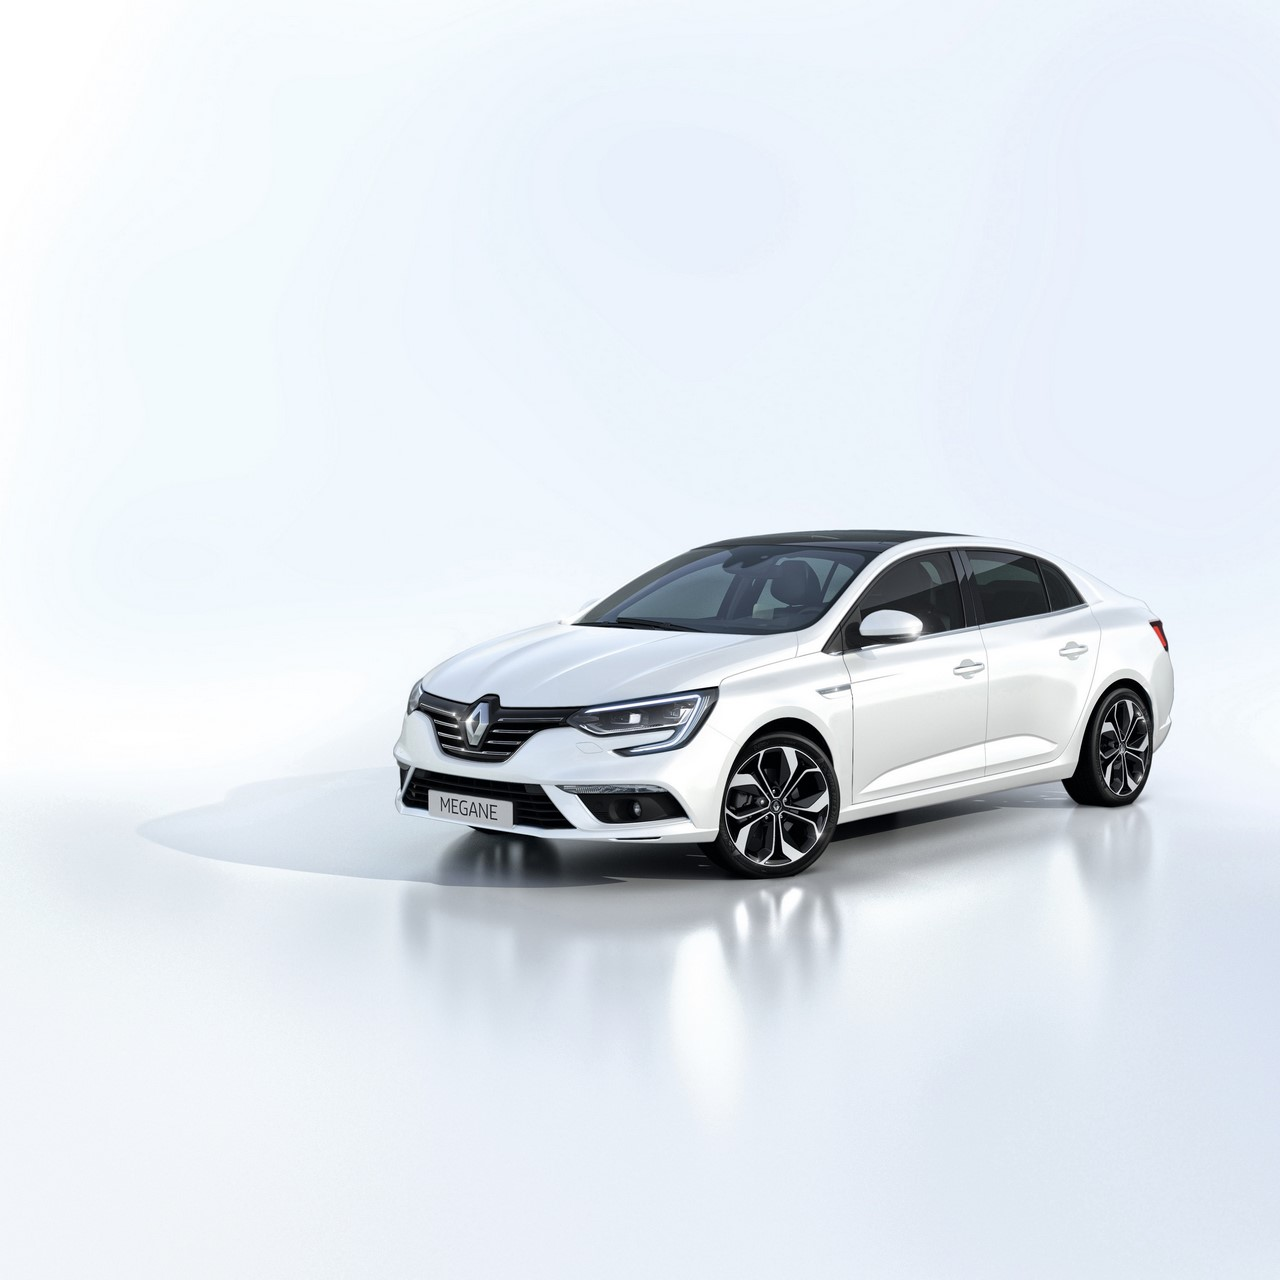 2016 Renault Megane Sedan front three quarters studio image